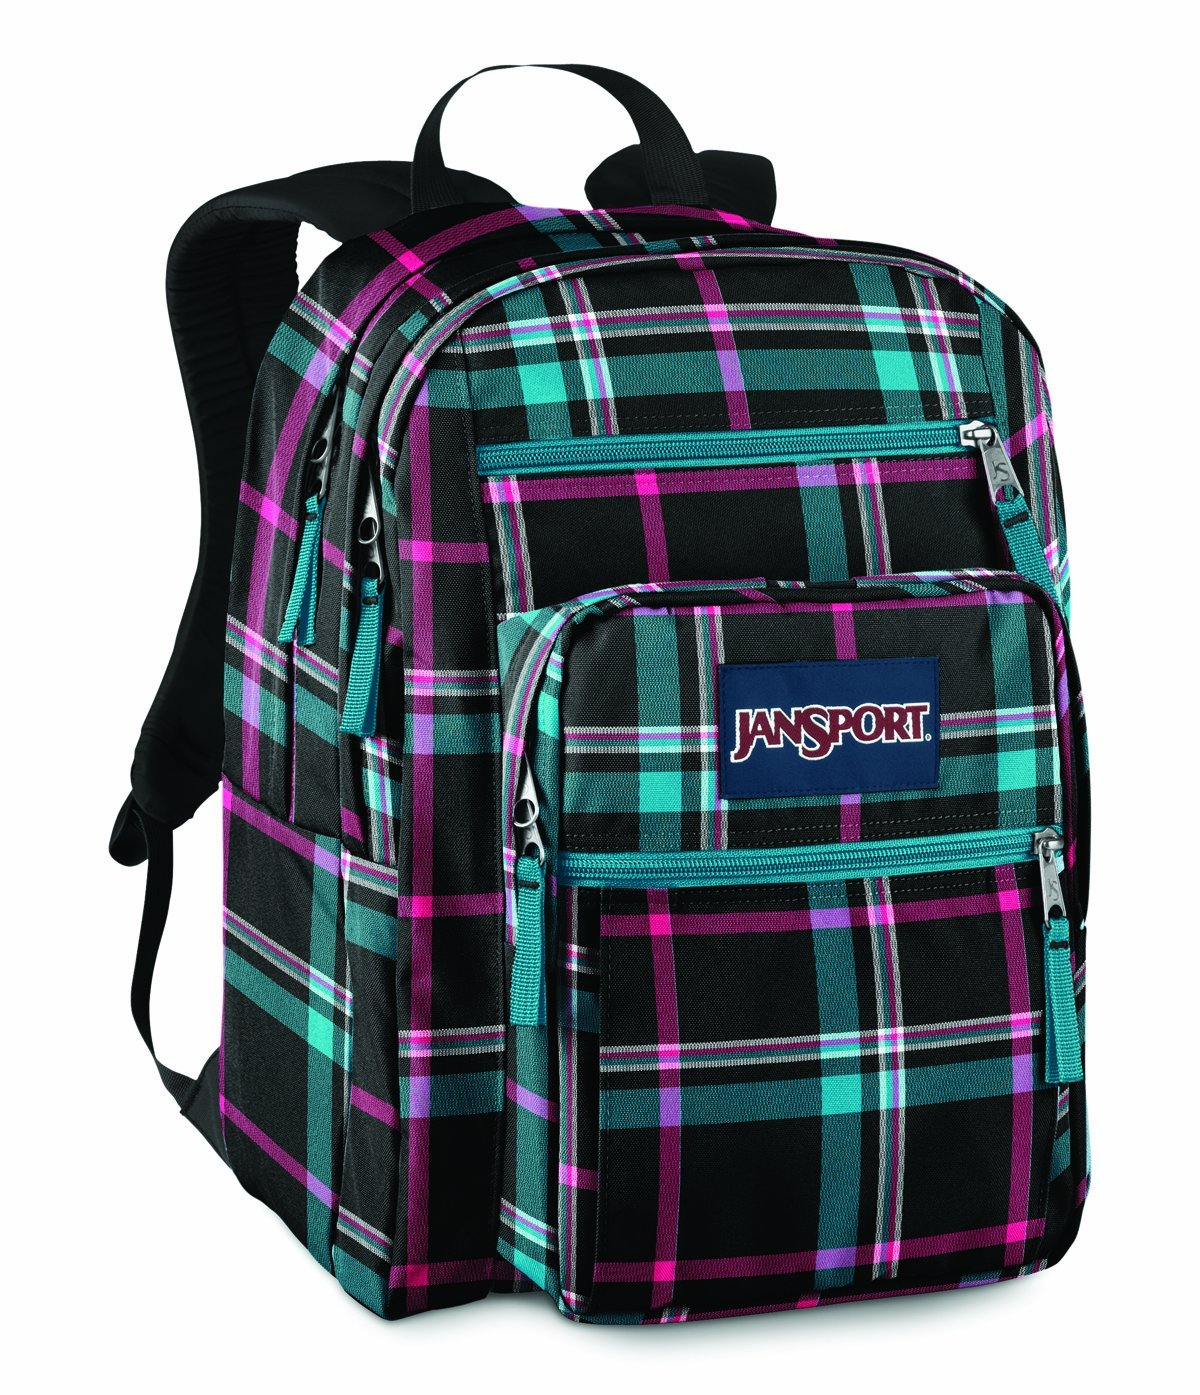 Jansport Backpacks For Teenage Girls Gn1oIrJ6